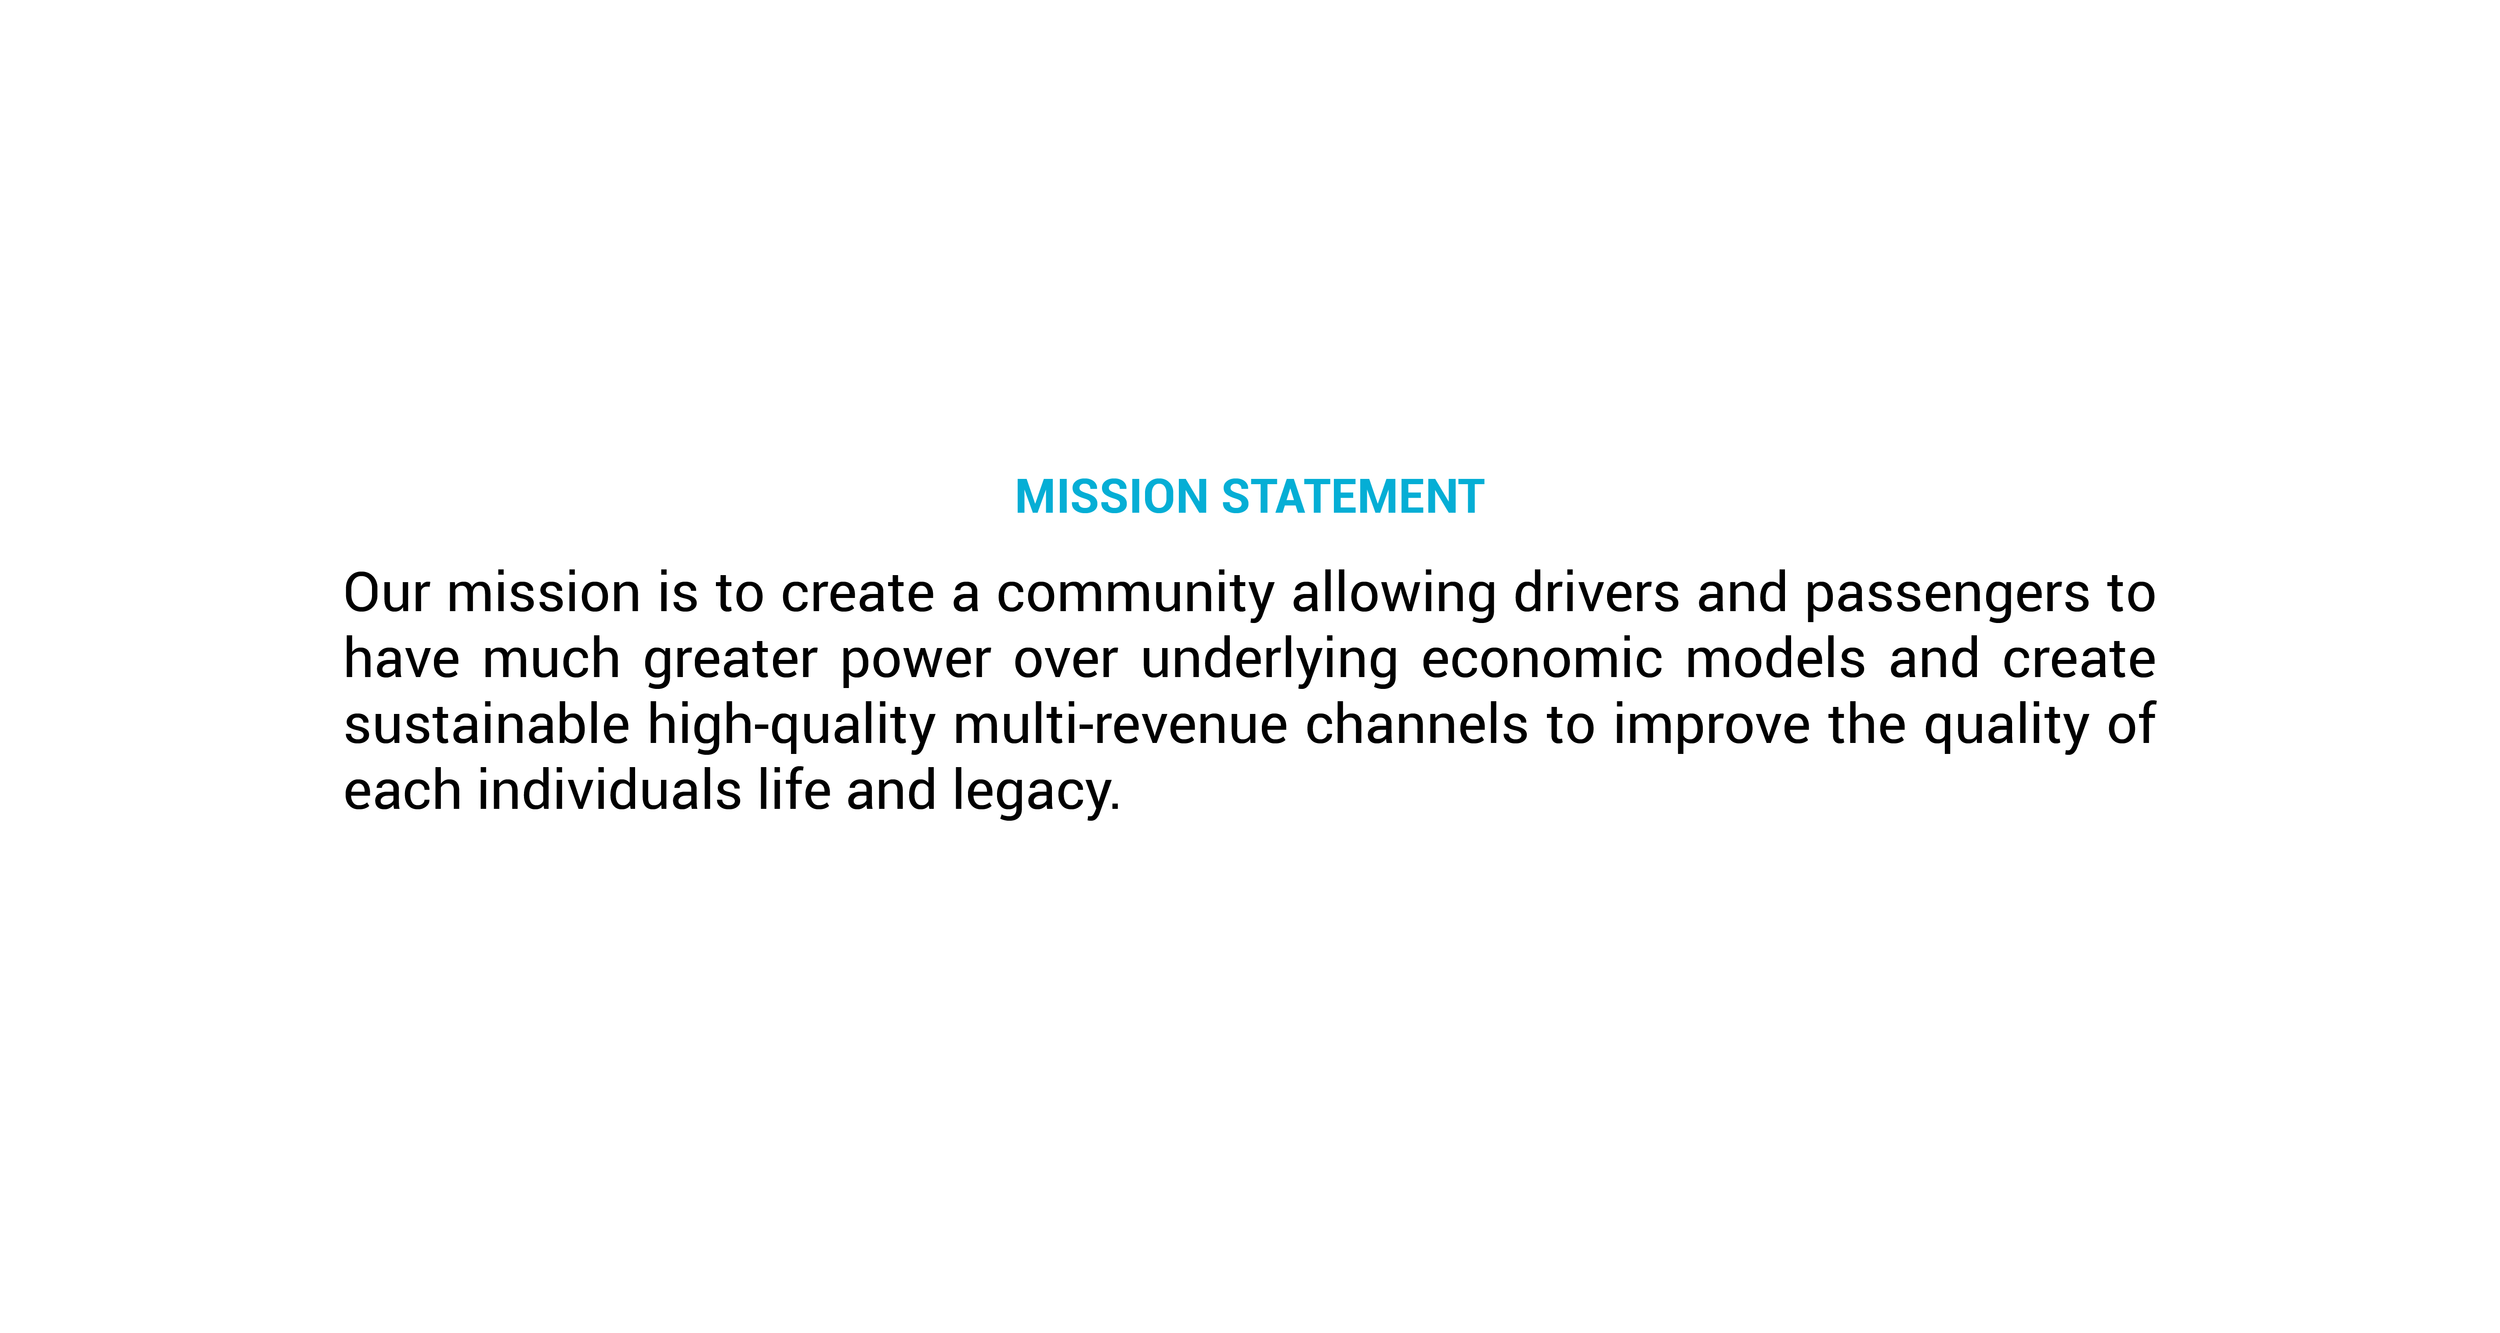 DACSEE_Page02_MissionStatement-01.png